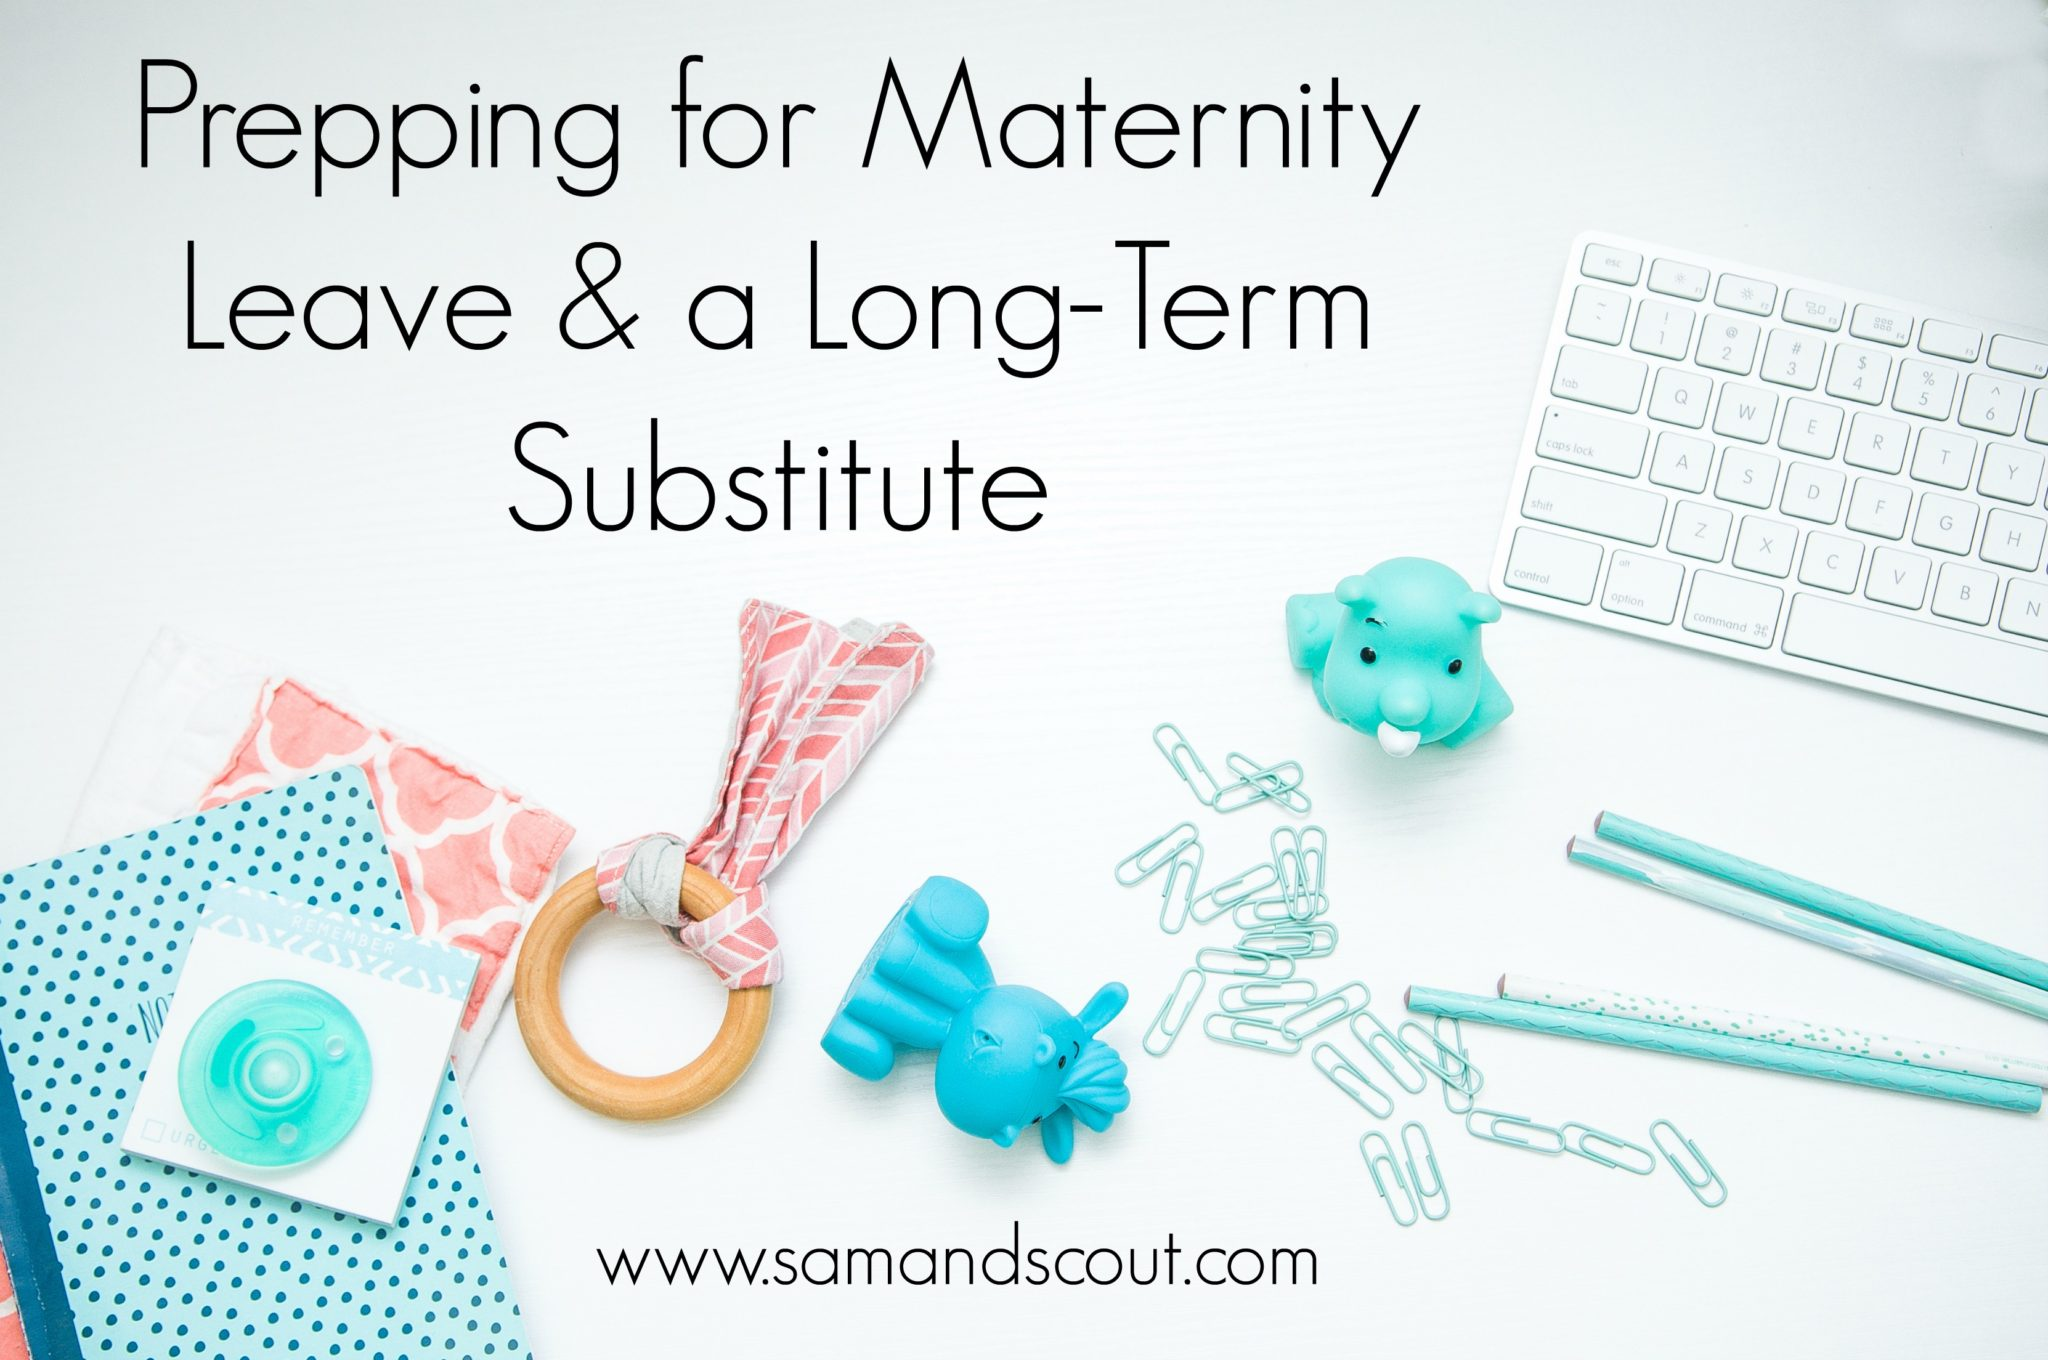 reader advice on maternity leave and prepping for a